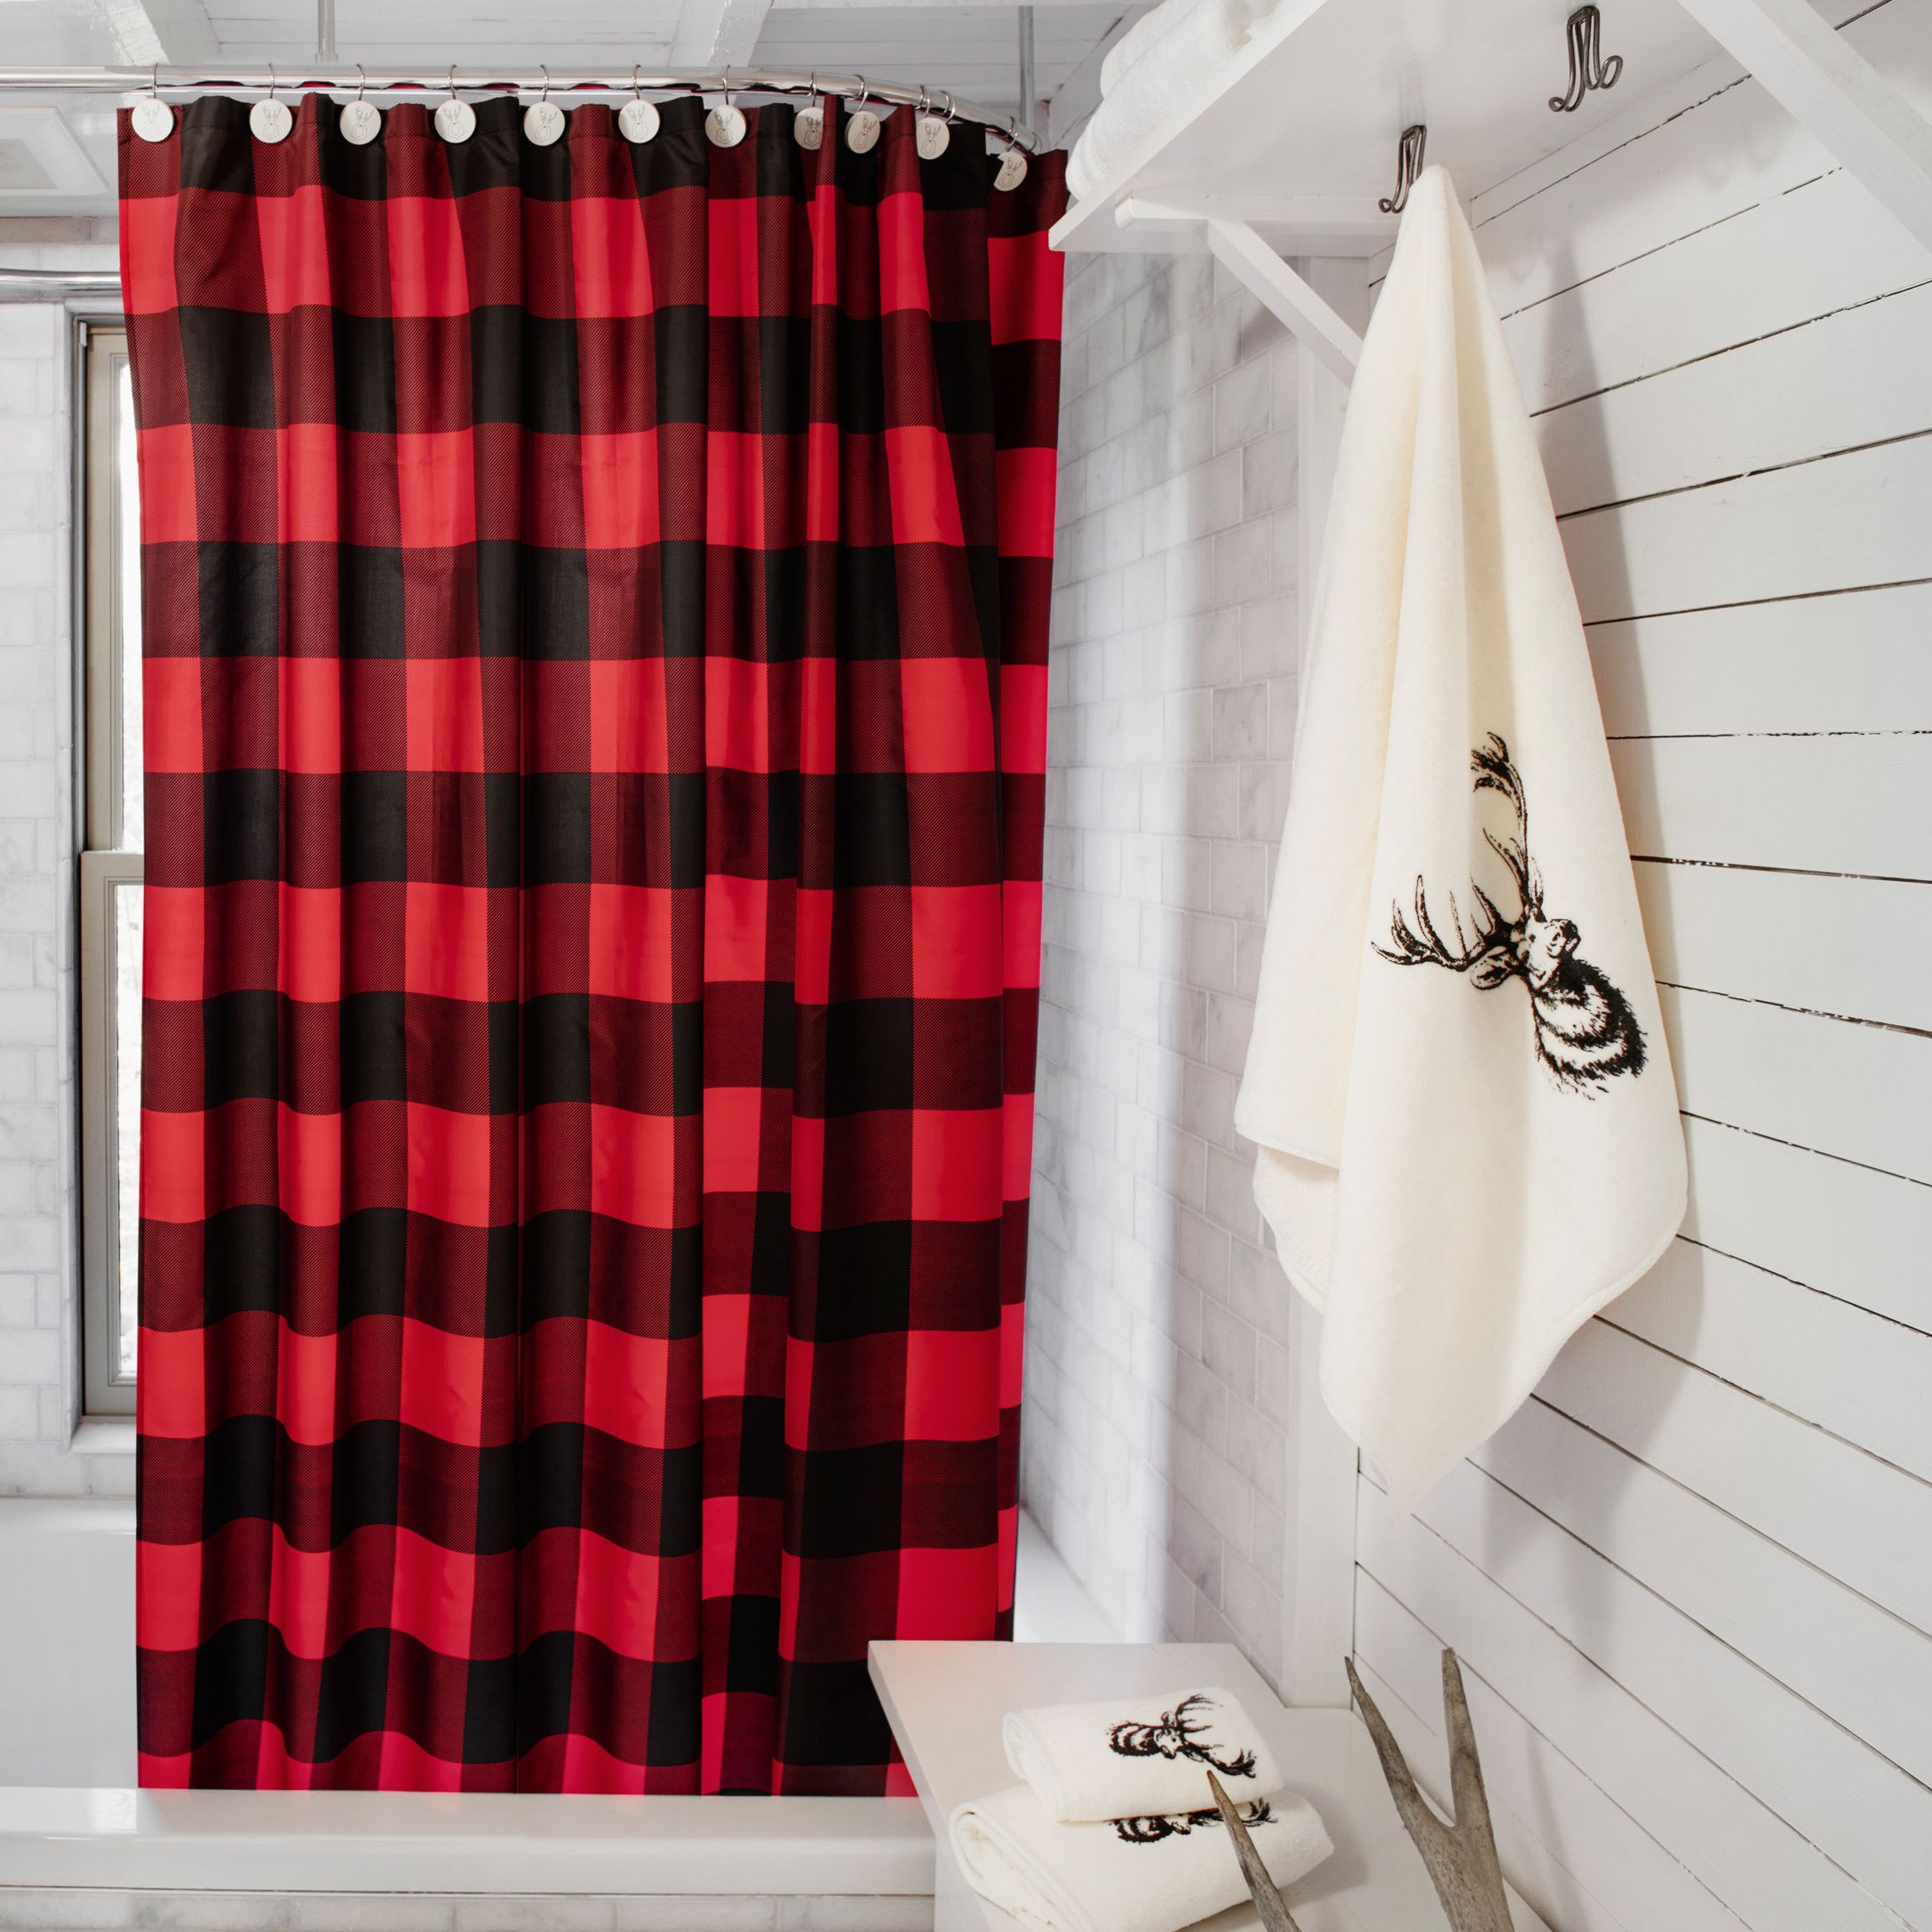 BUFFALO CHECK SHOWER CURTAIN